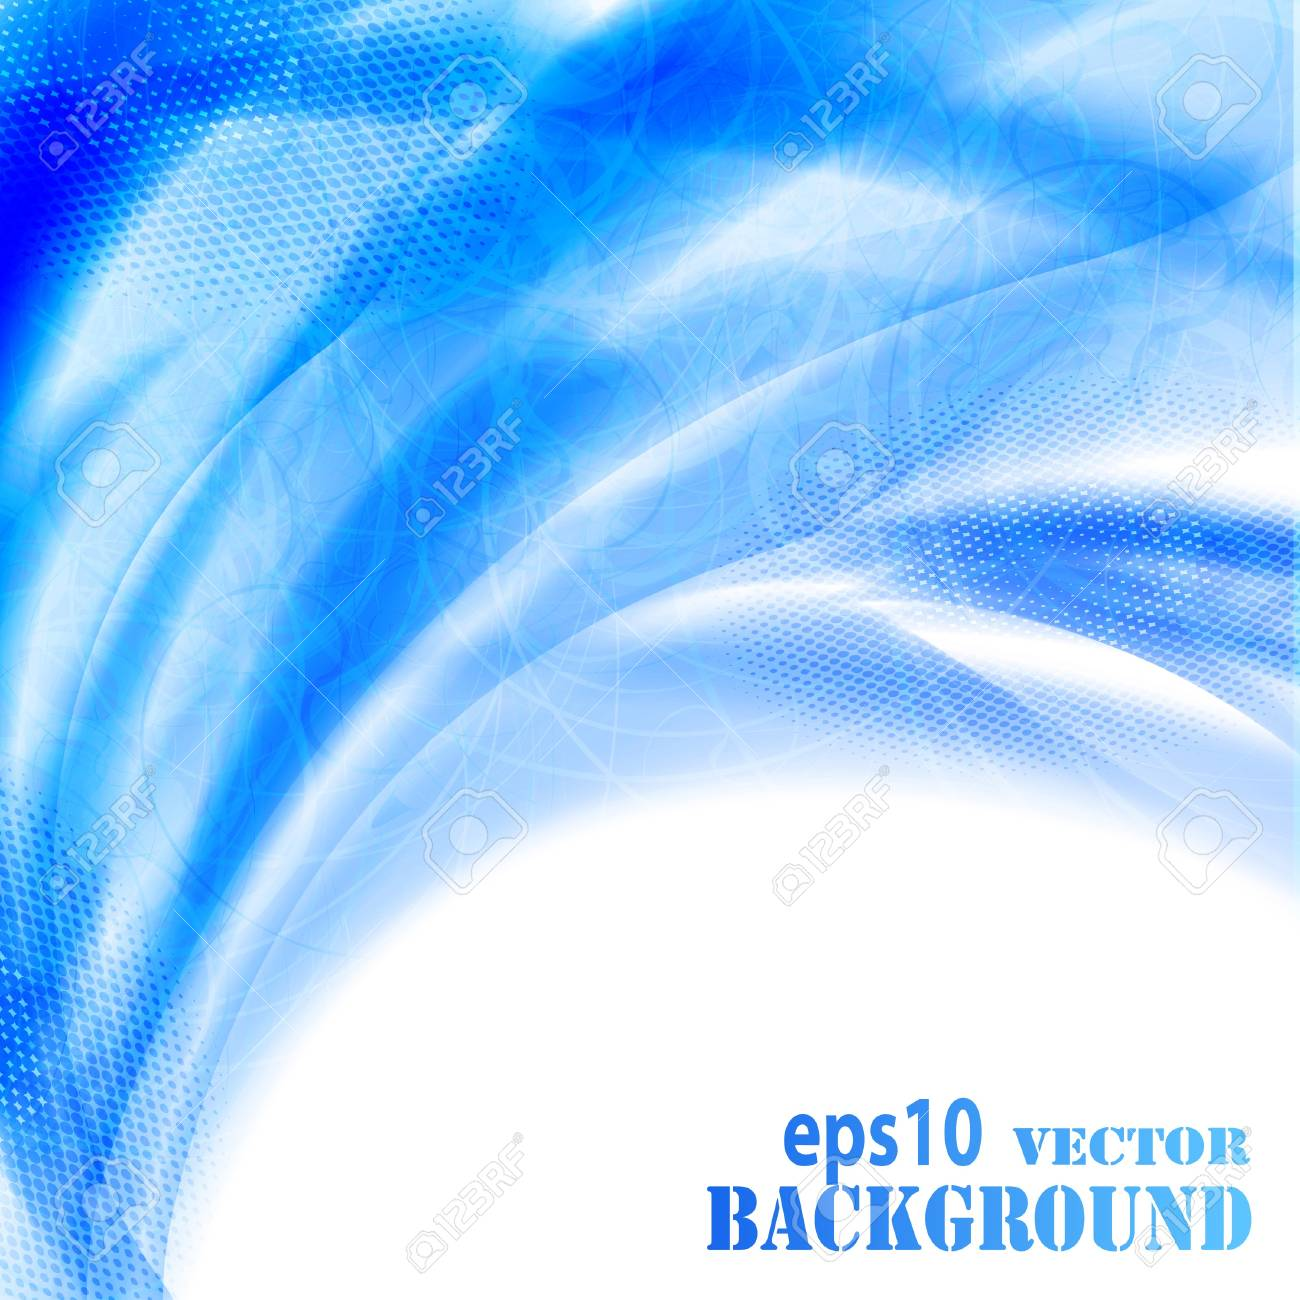 Abstract blue waves background. Vector eps10 illustration Stock Vector - 9721833